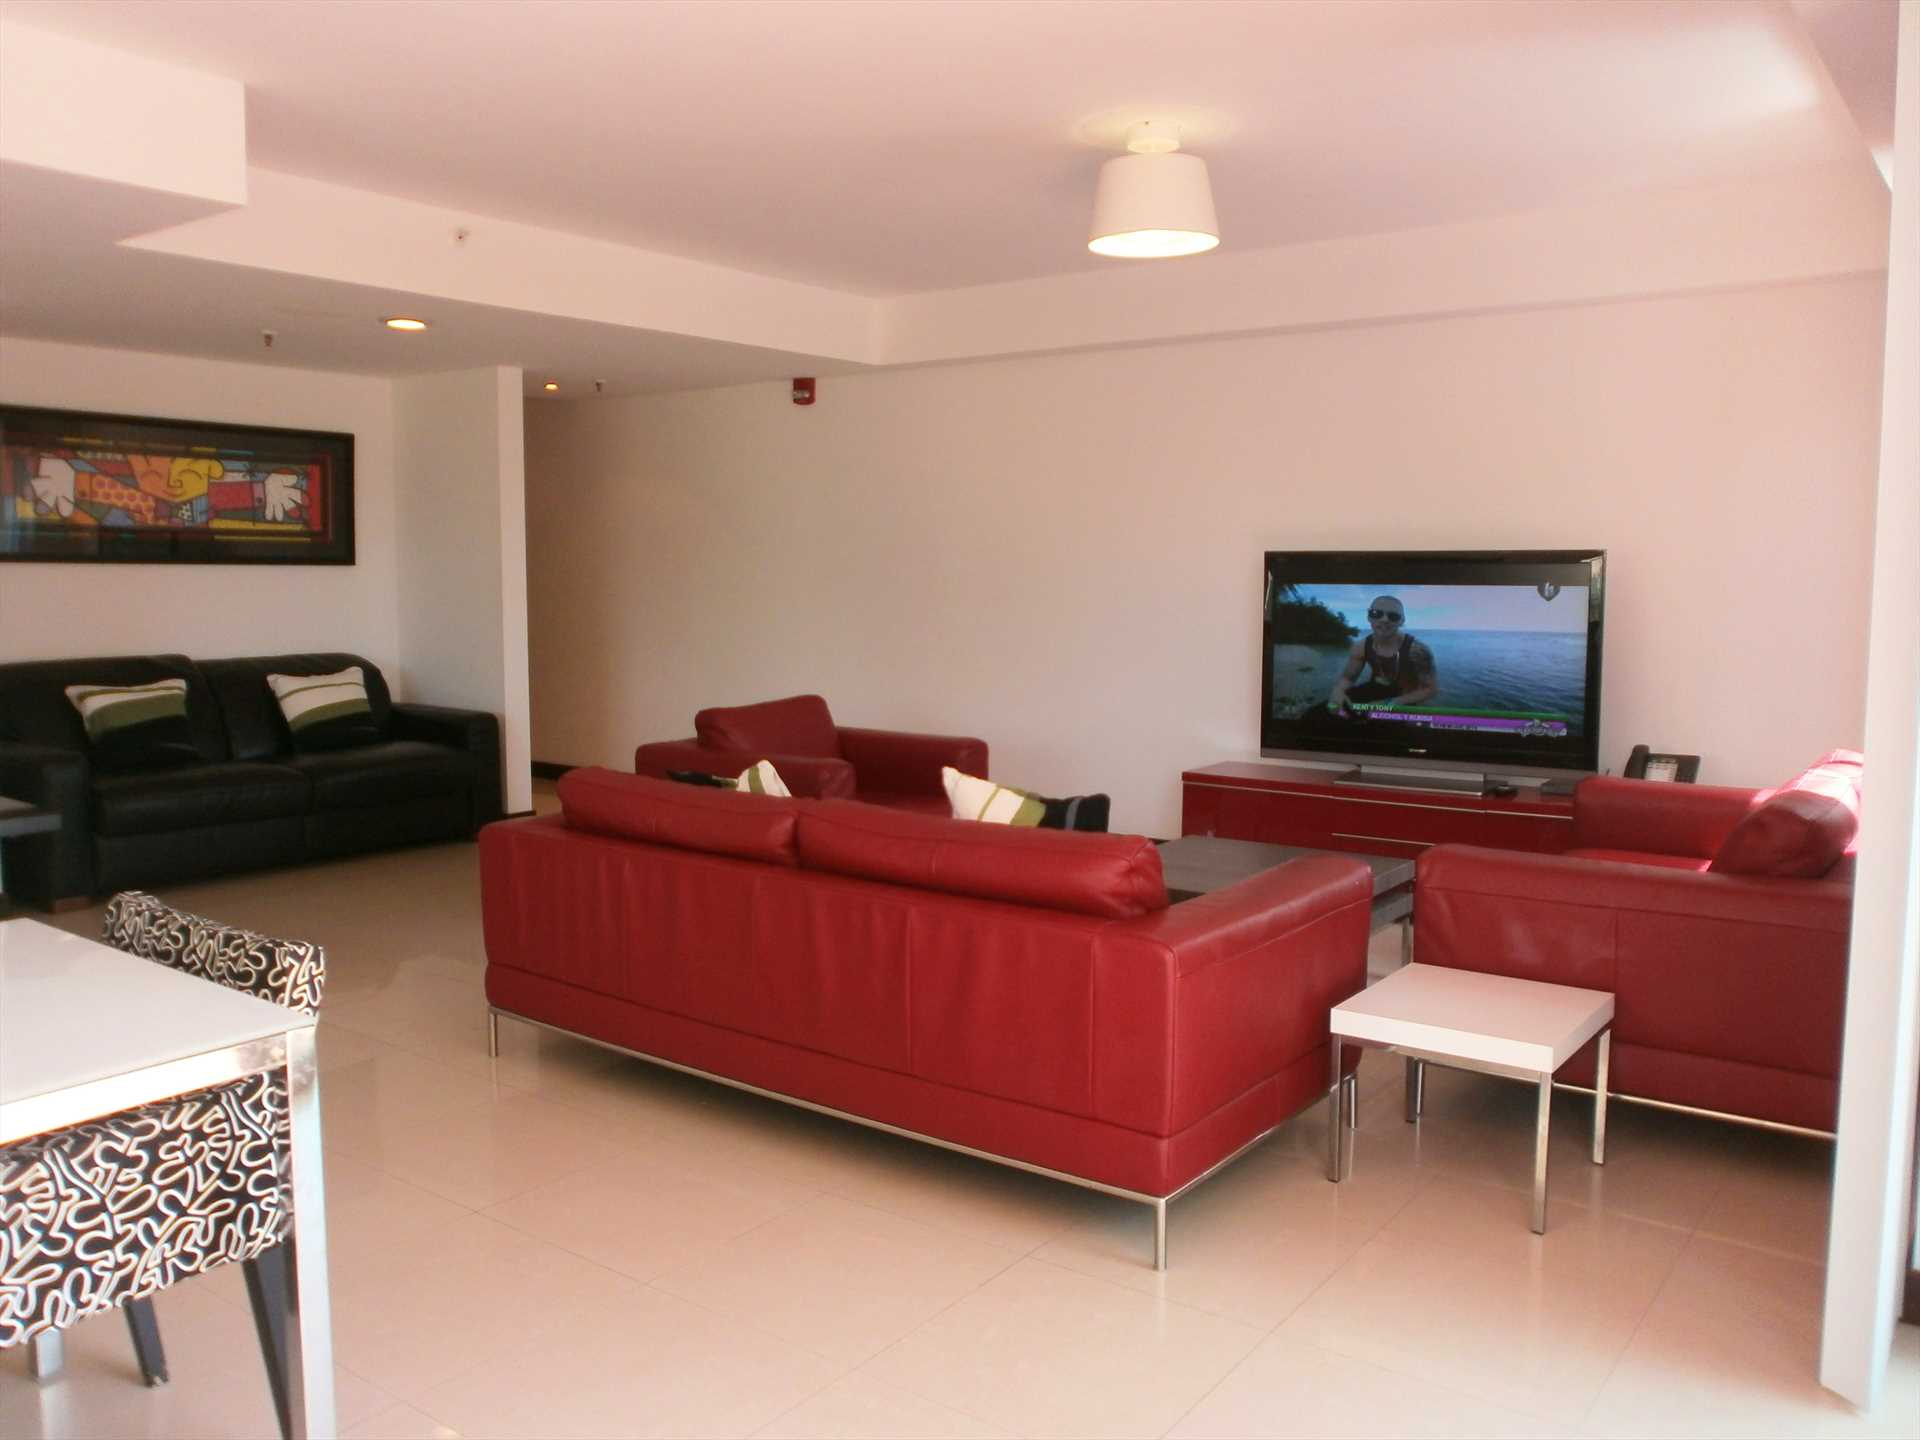 Living area with a large 4 piece sofa set and flatscreen HDTV.